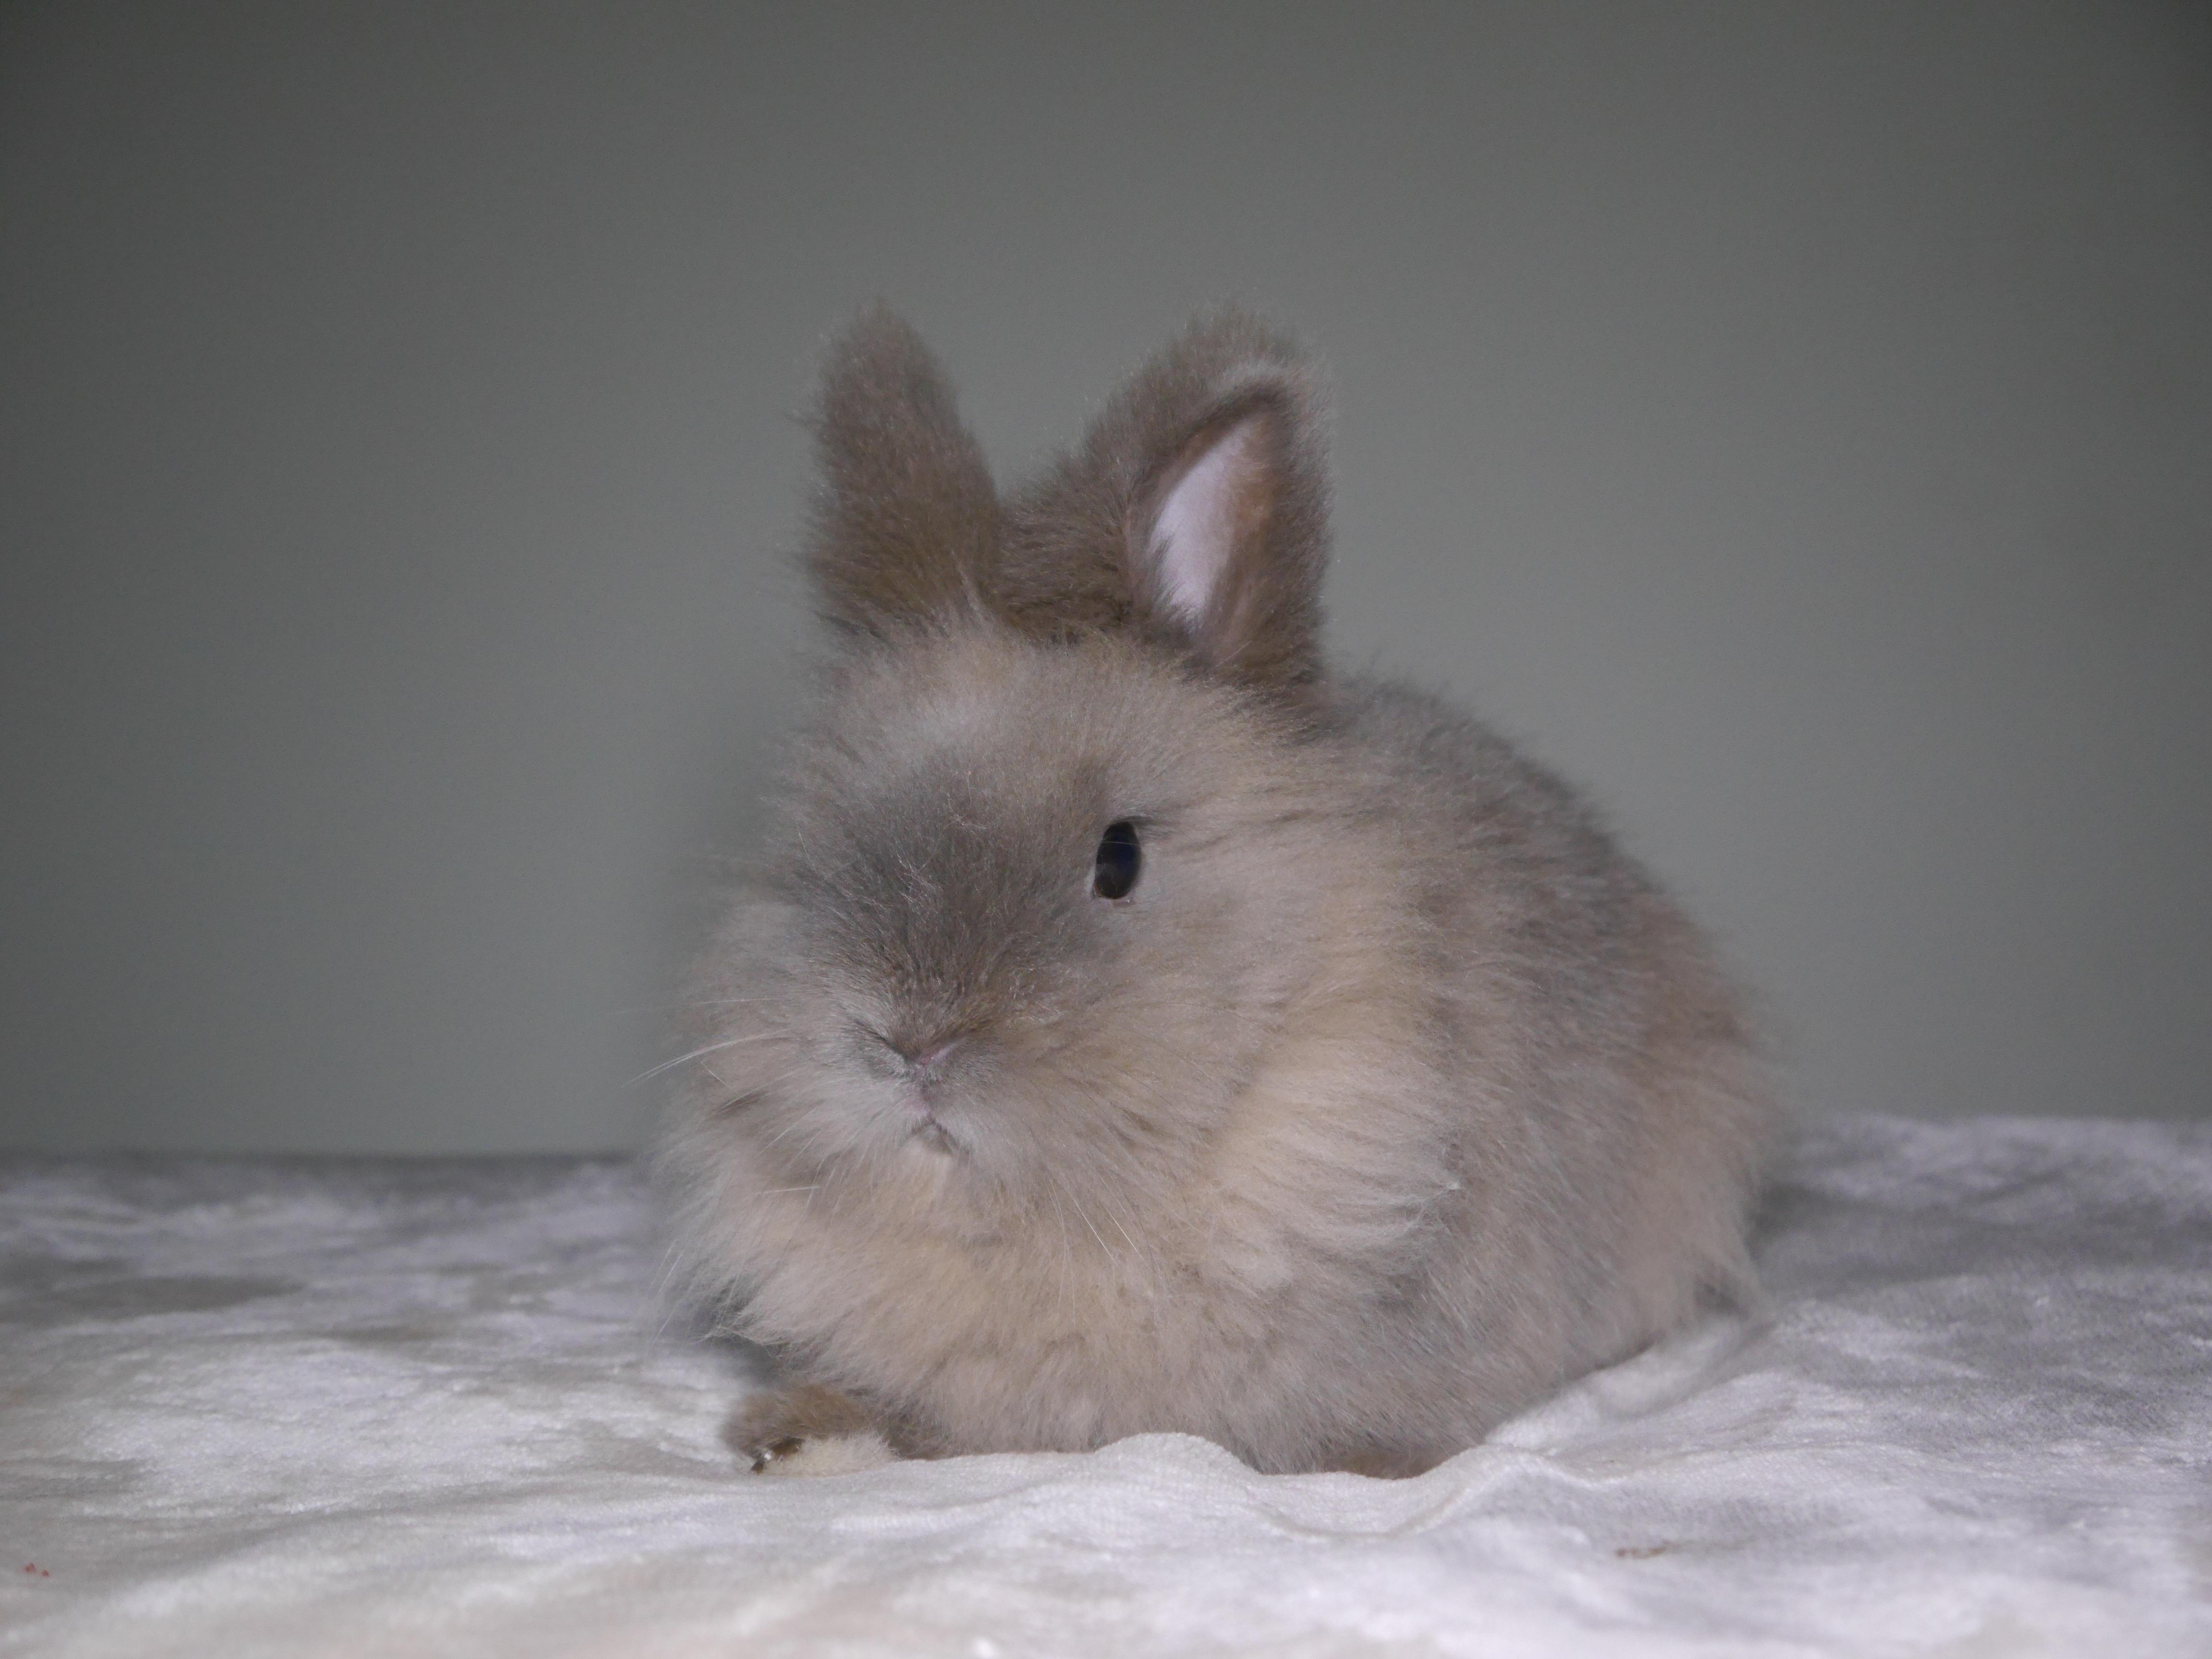 Put your message or logo next to my bunny